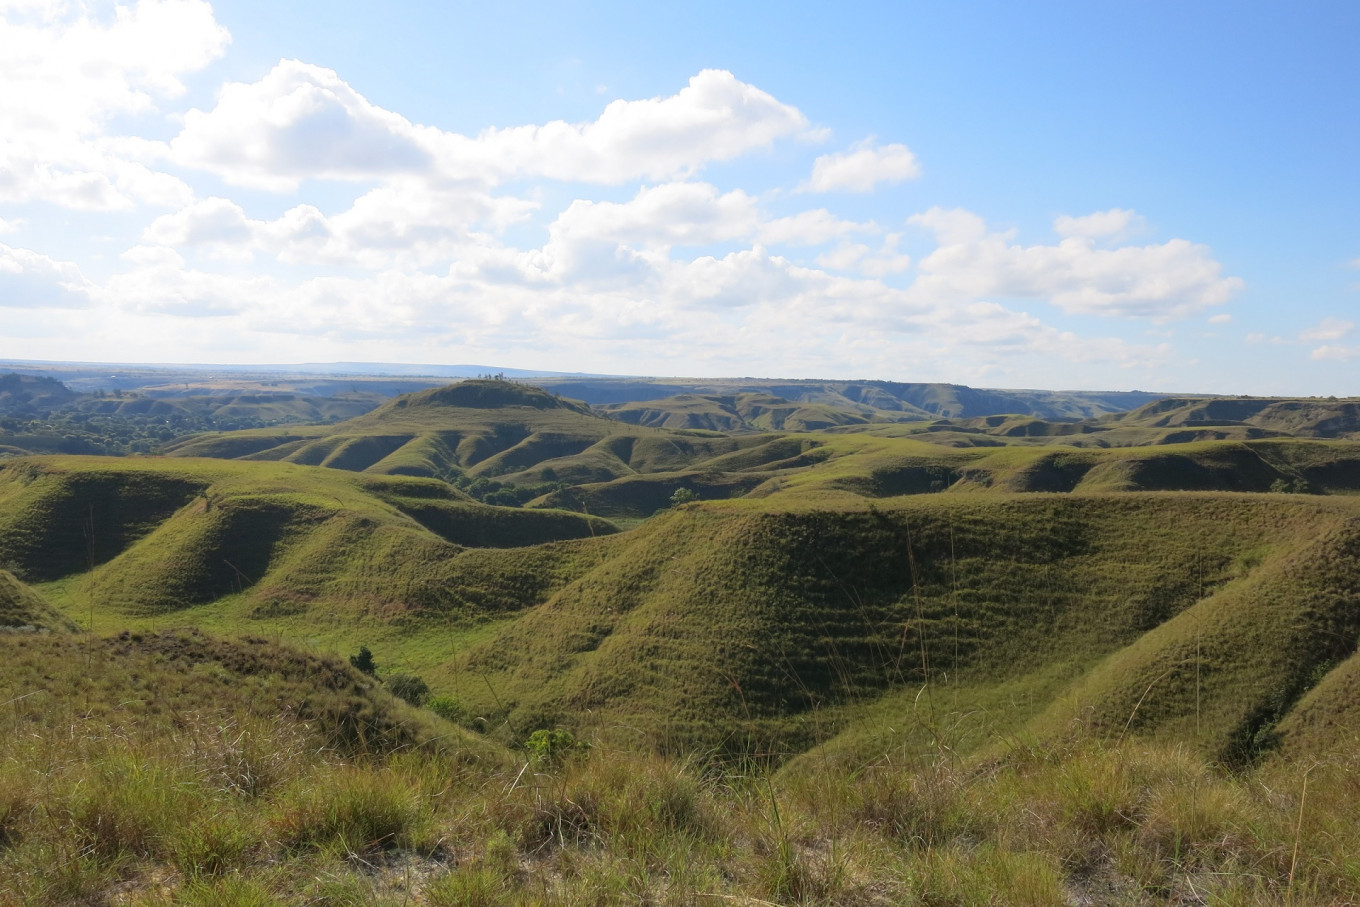 East Sumba and its unforgettable beauty